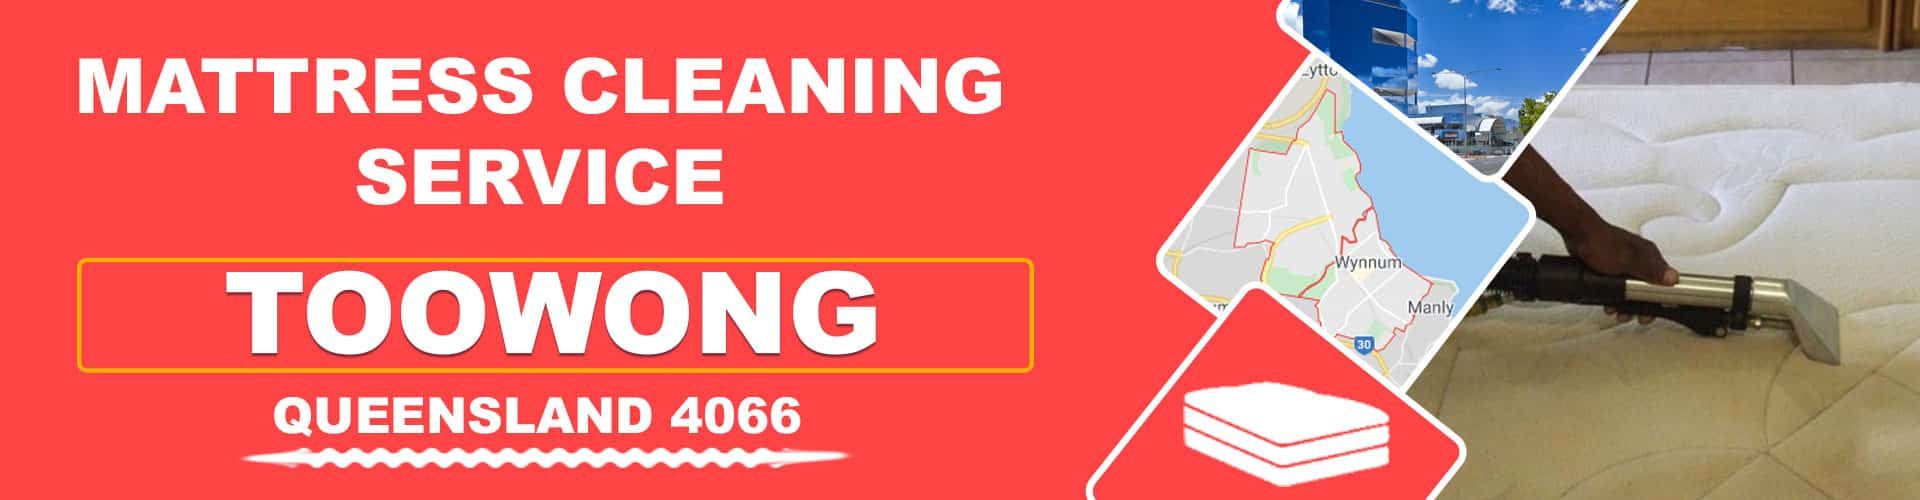 MATTRESS CLEANING TOOWONG